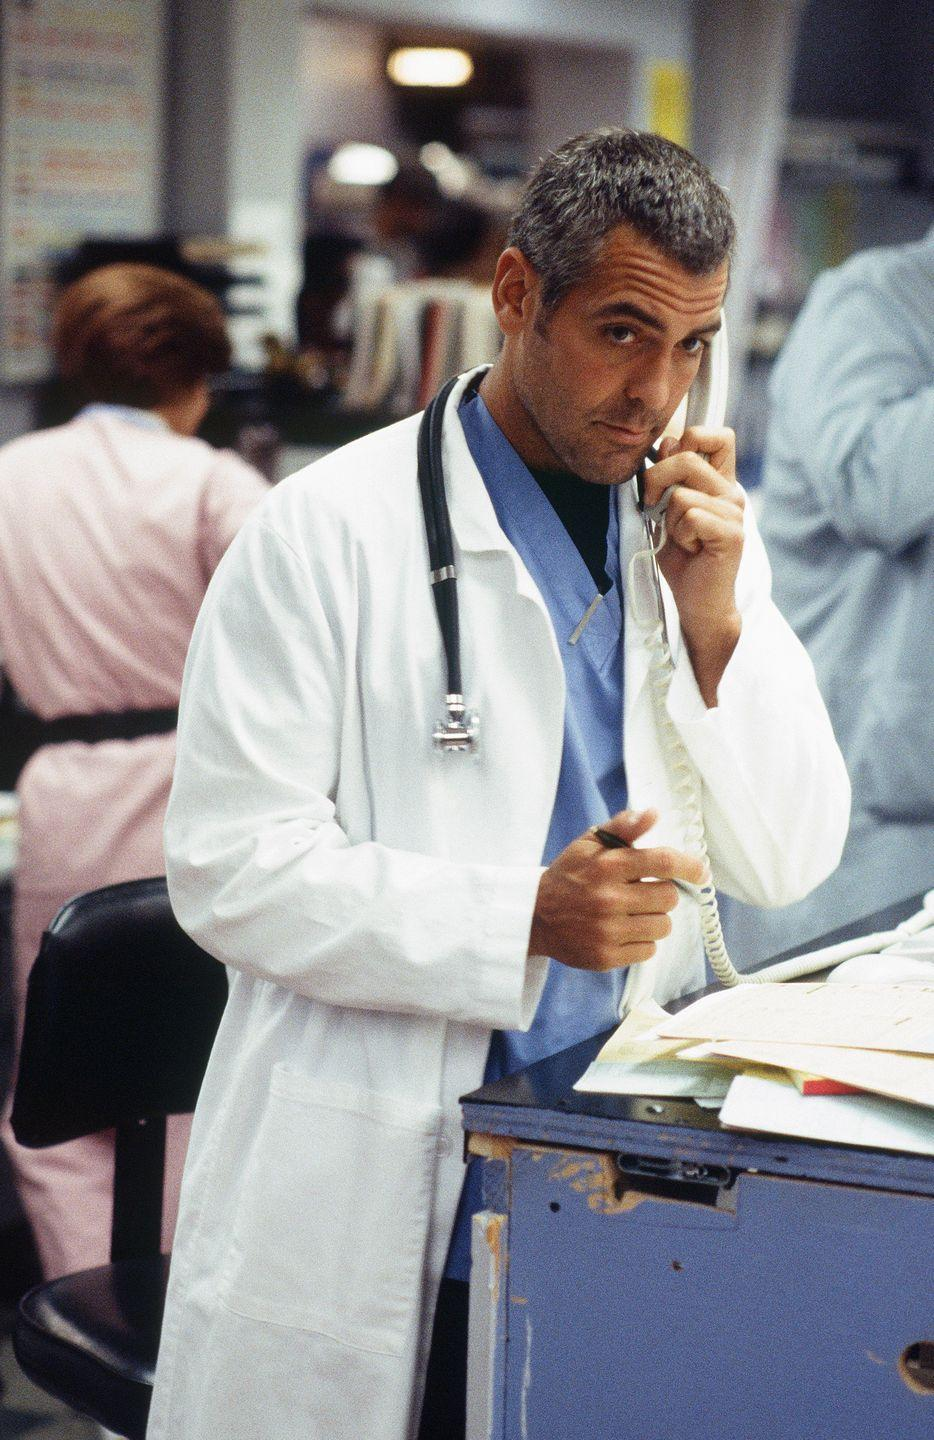 <p>The Oscar winner is one of the most well-known actors in Hollywood, but before his film success he started out on the medical drama. You might remember him as Dr. Doug Ross, who he played from 1994 to 1999.</p>